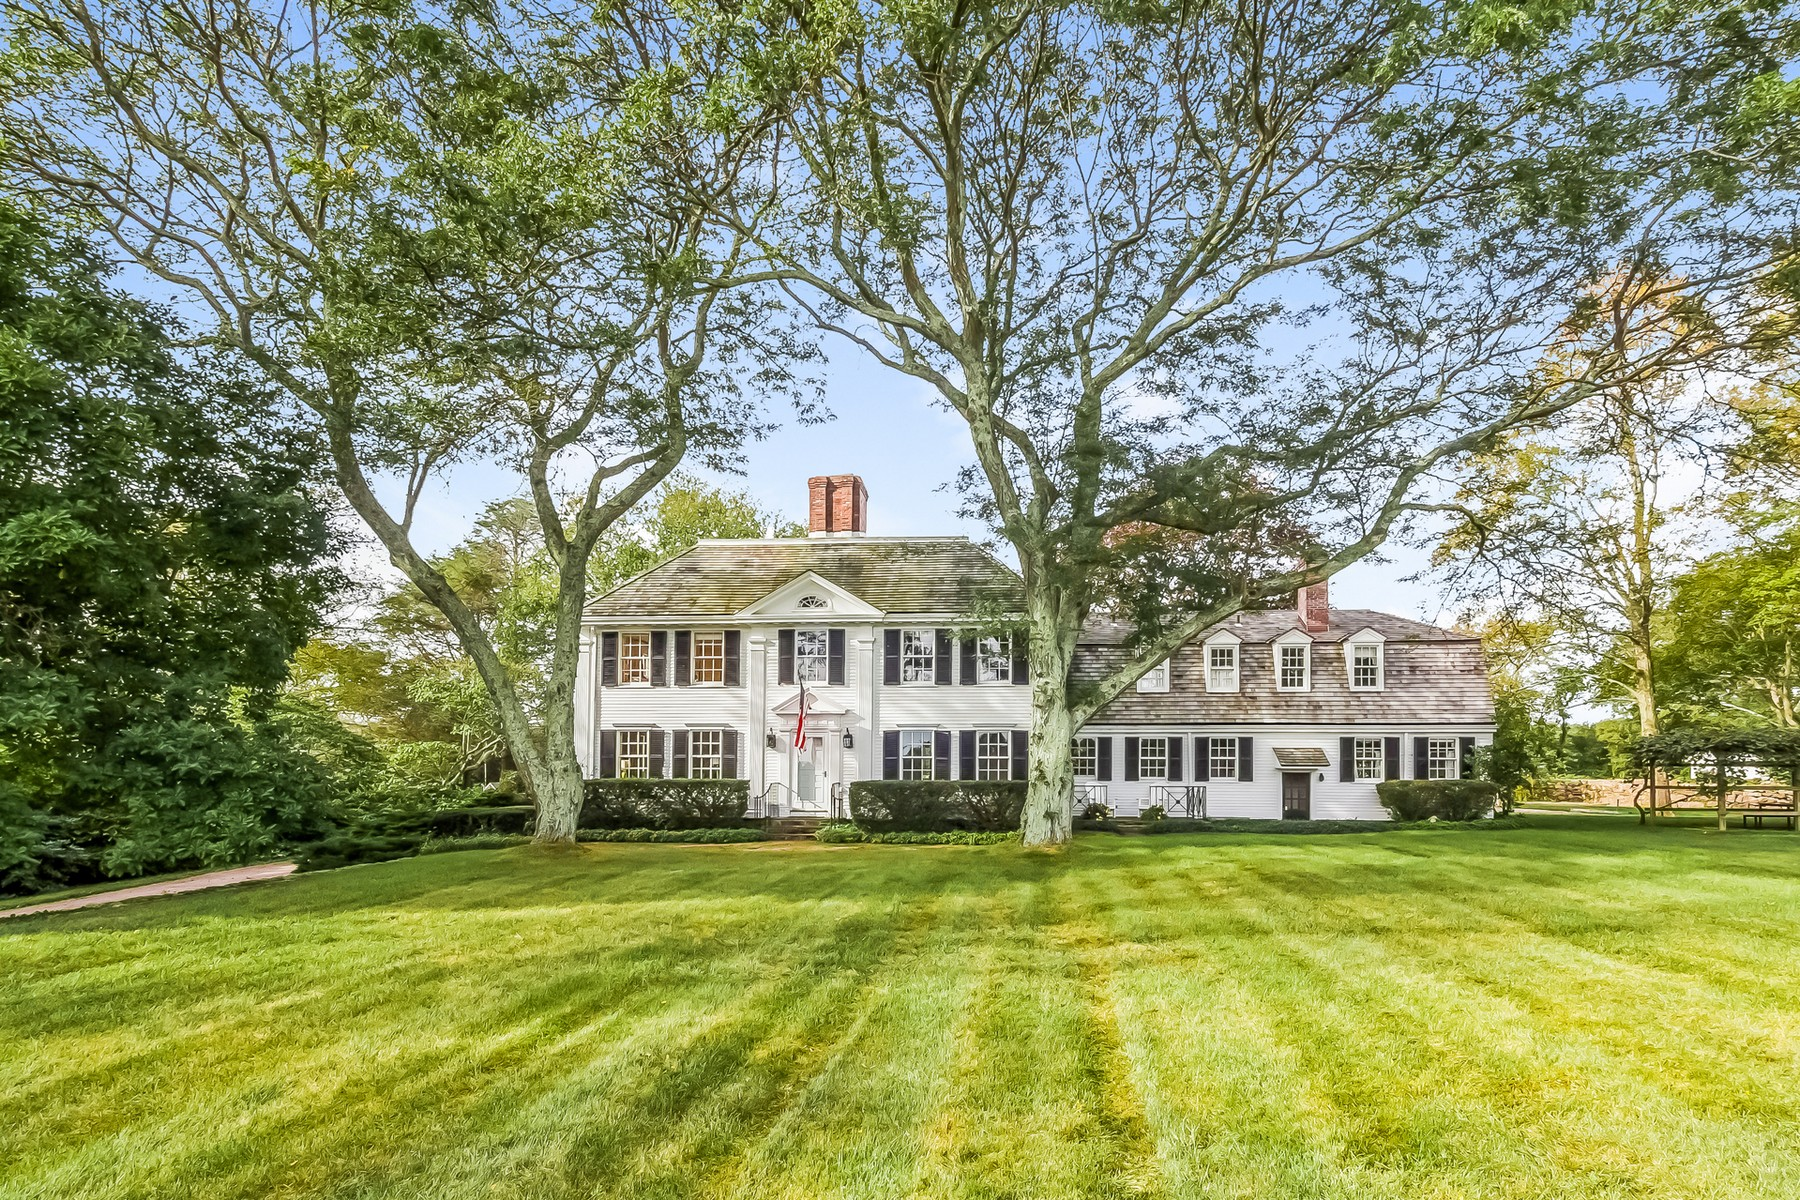 Single Family Home for Sale at Merry Meeting Farm 264 Taugwonk Road Stonington, Connecticut 06378 United States